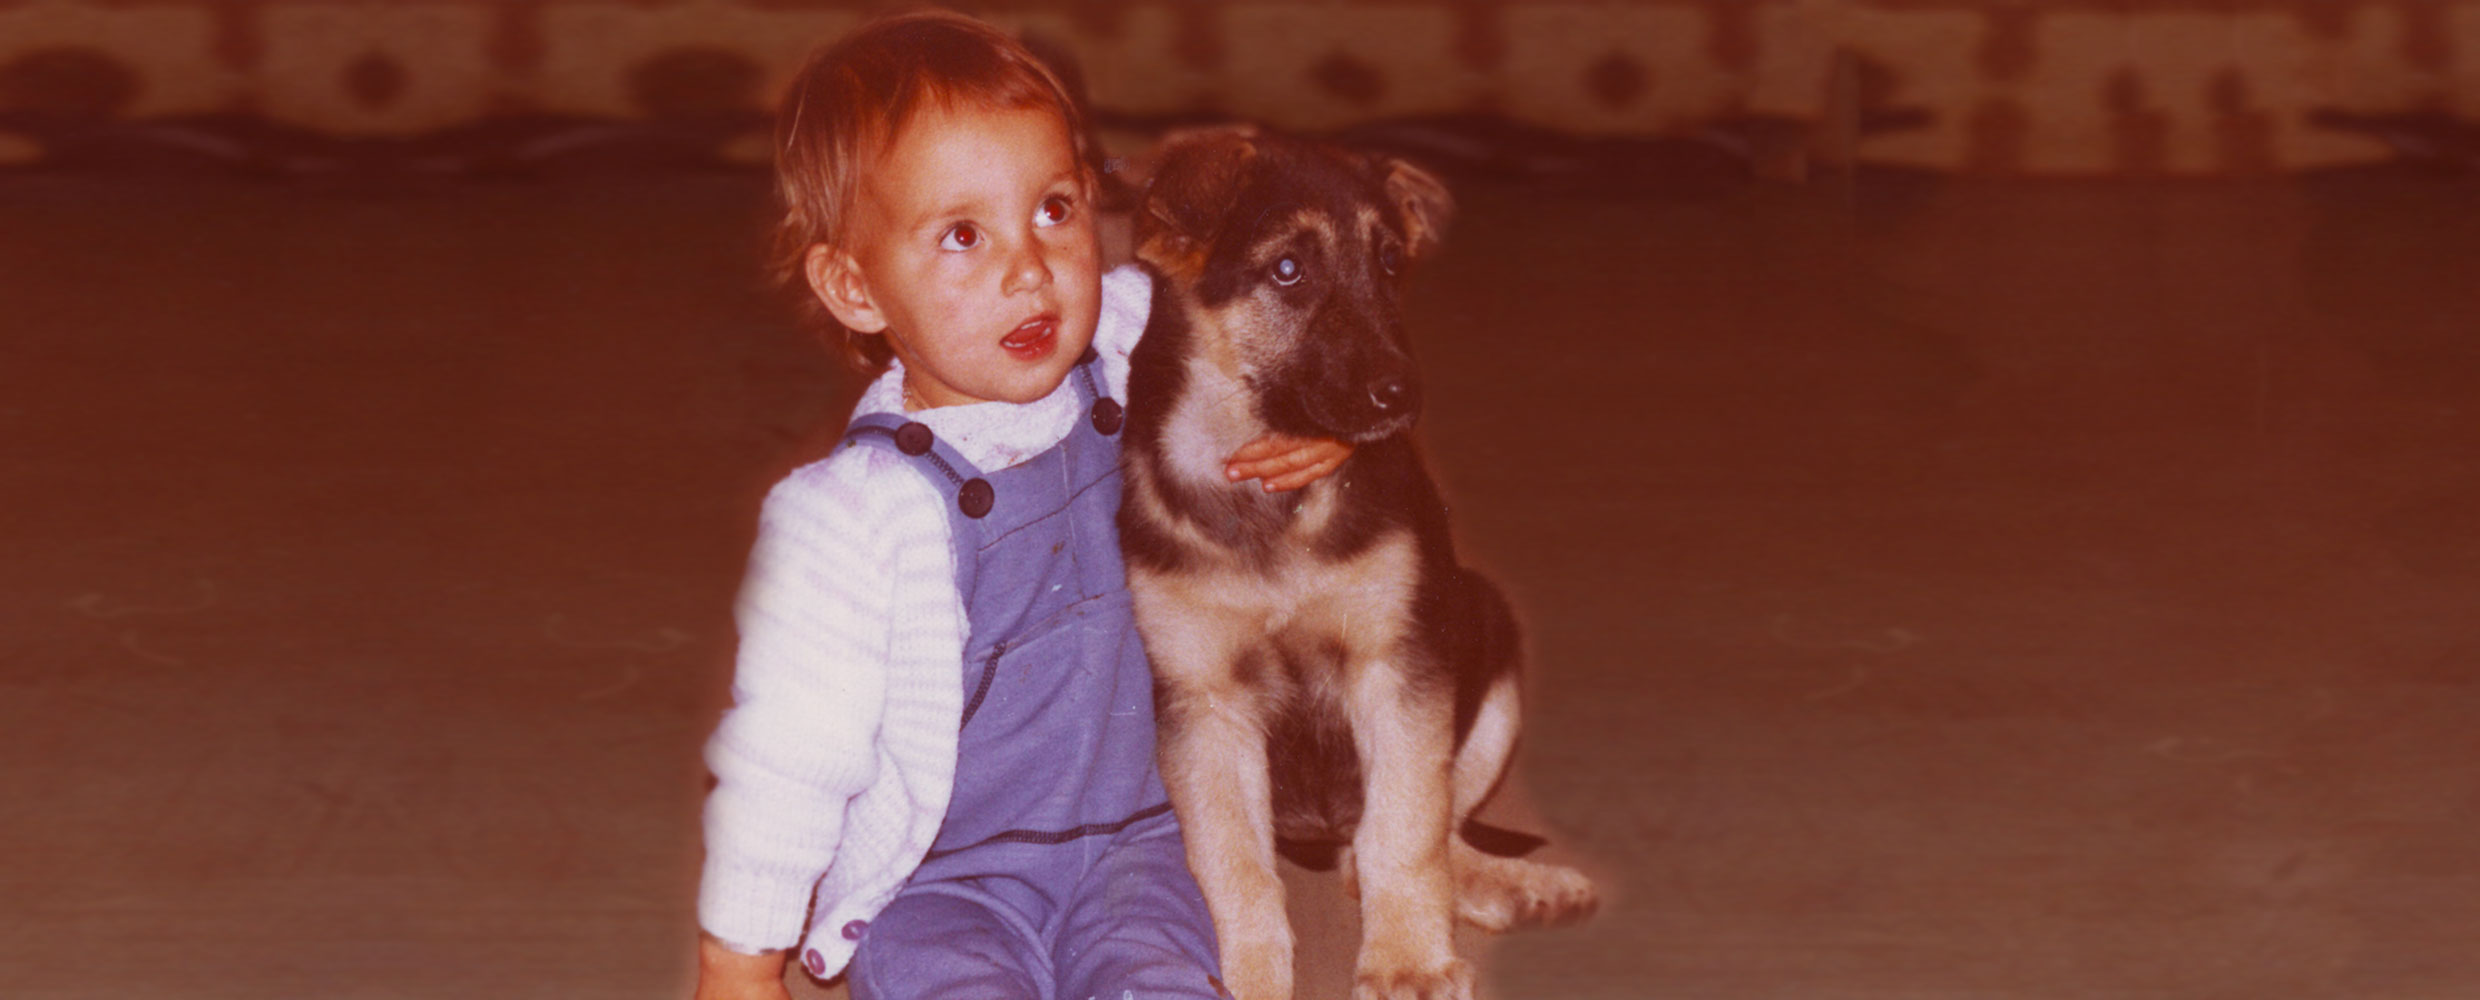 Alison Roets as a toddler with Tarka the German Shepherd